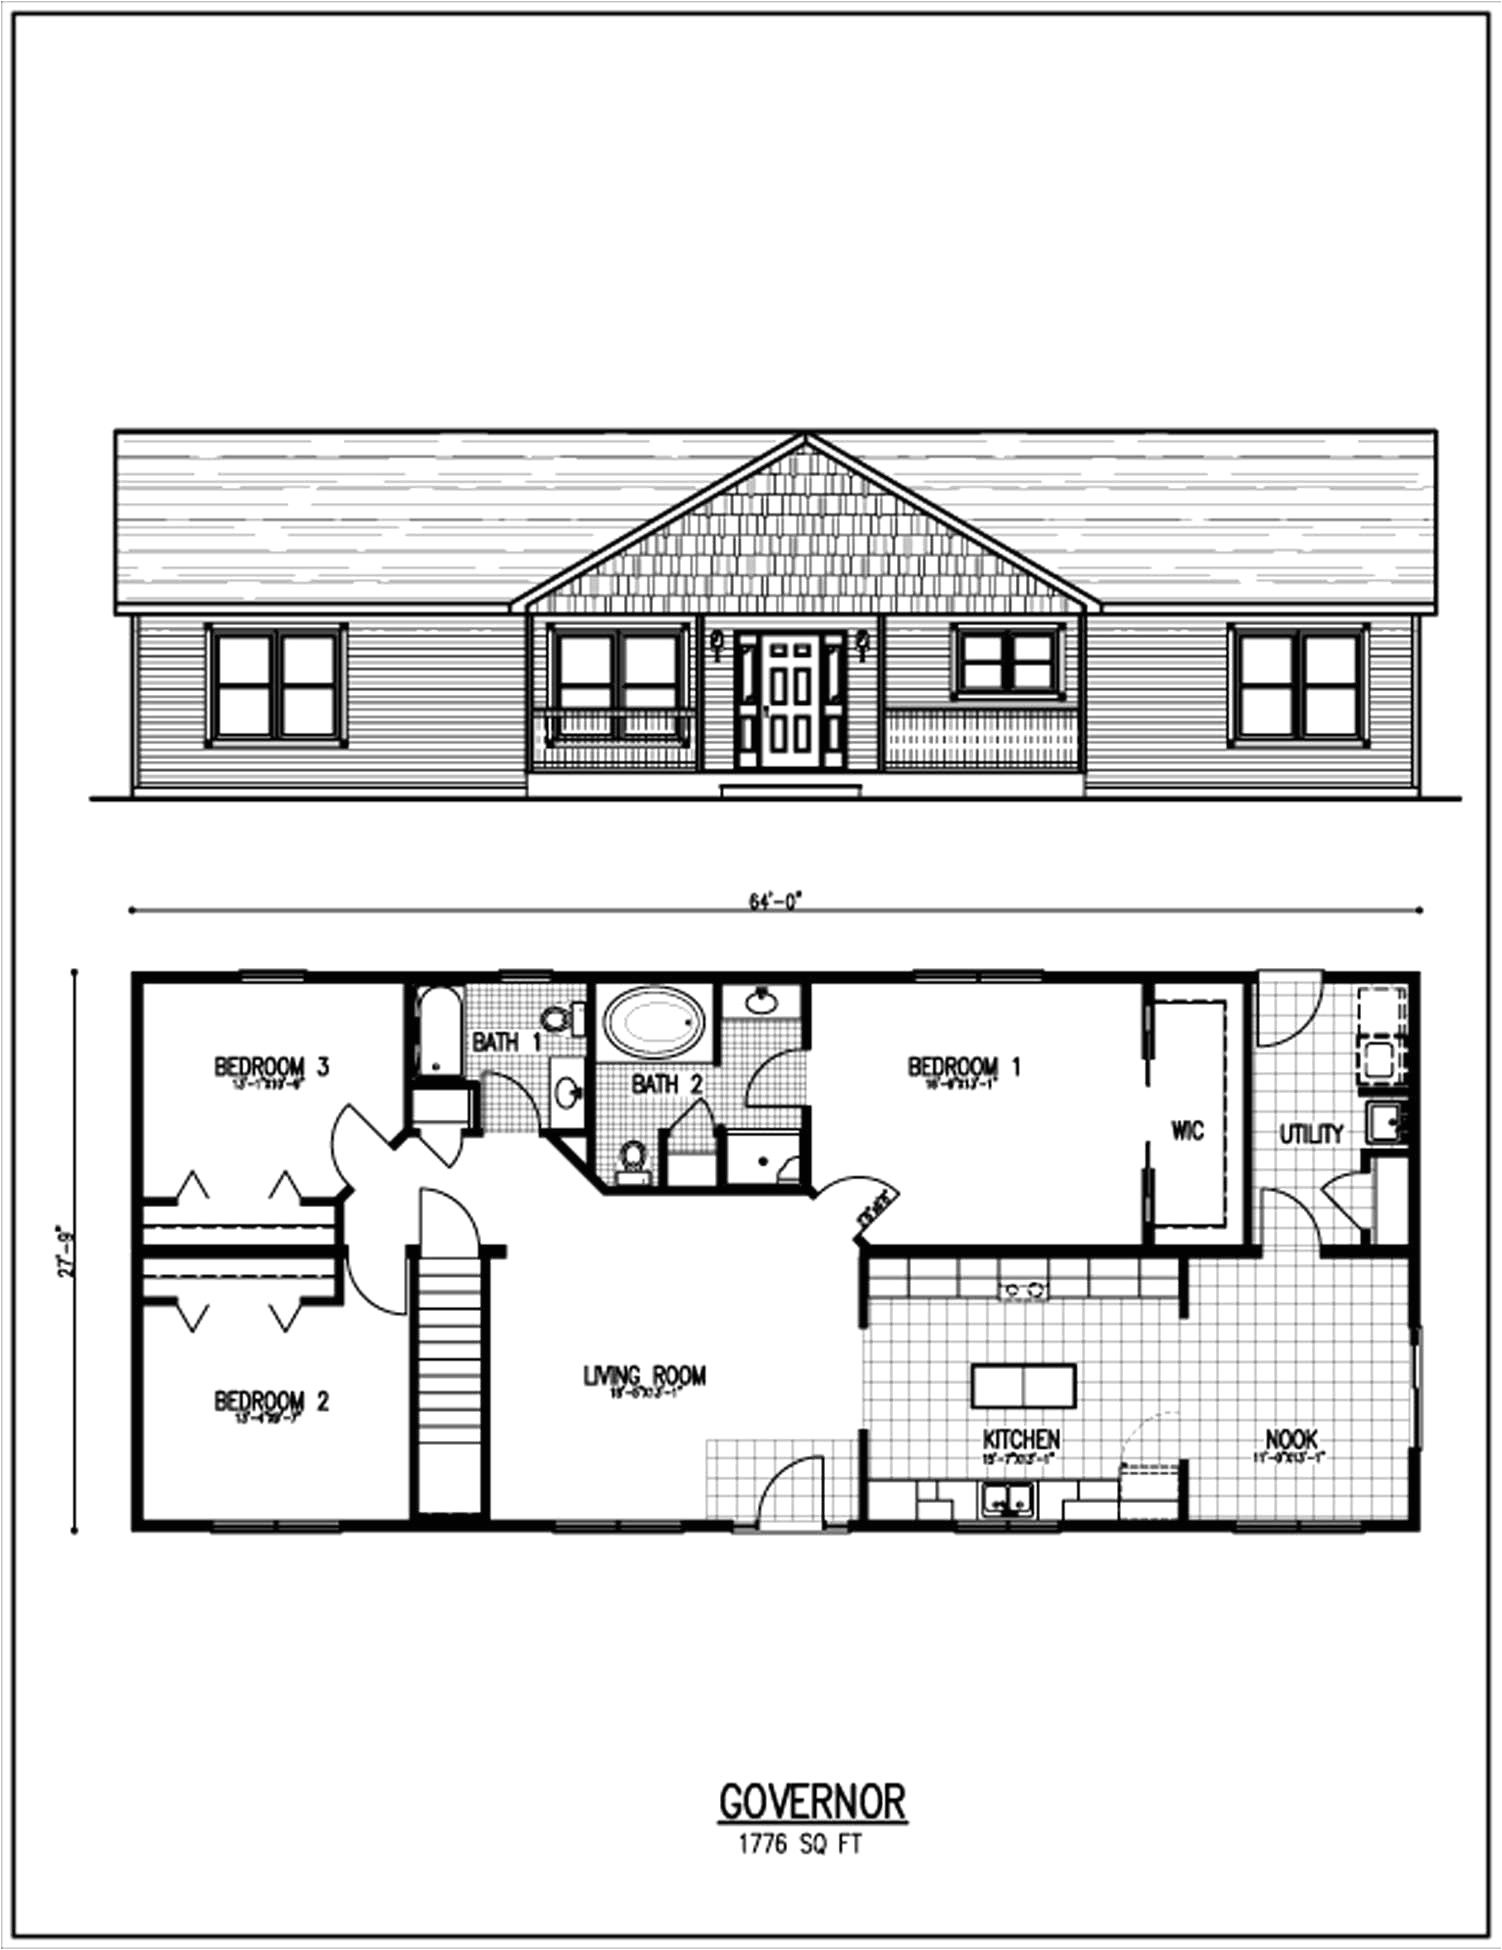 House Plans Under 150k To Build Check More At Https Bradshomefurnishings Com House Plans Under Floor Plans Ranch Basement House Plans Ranch House Floor Plans